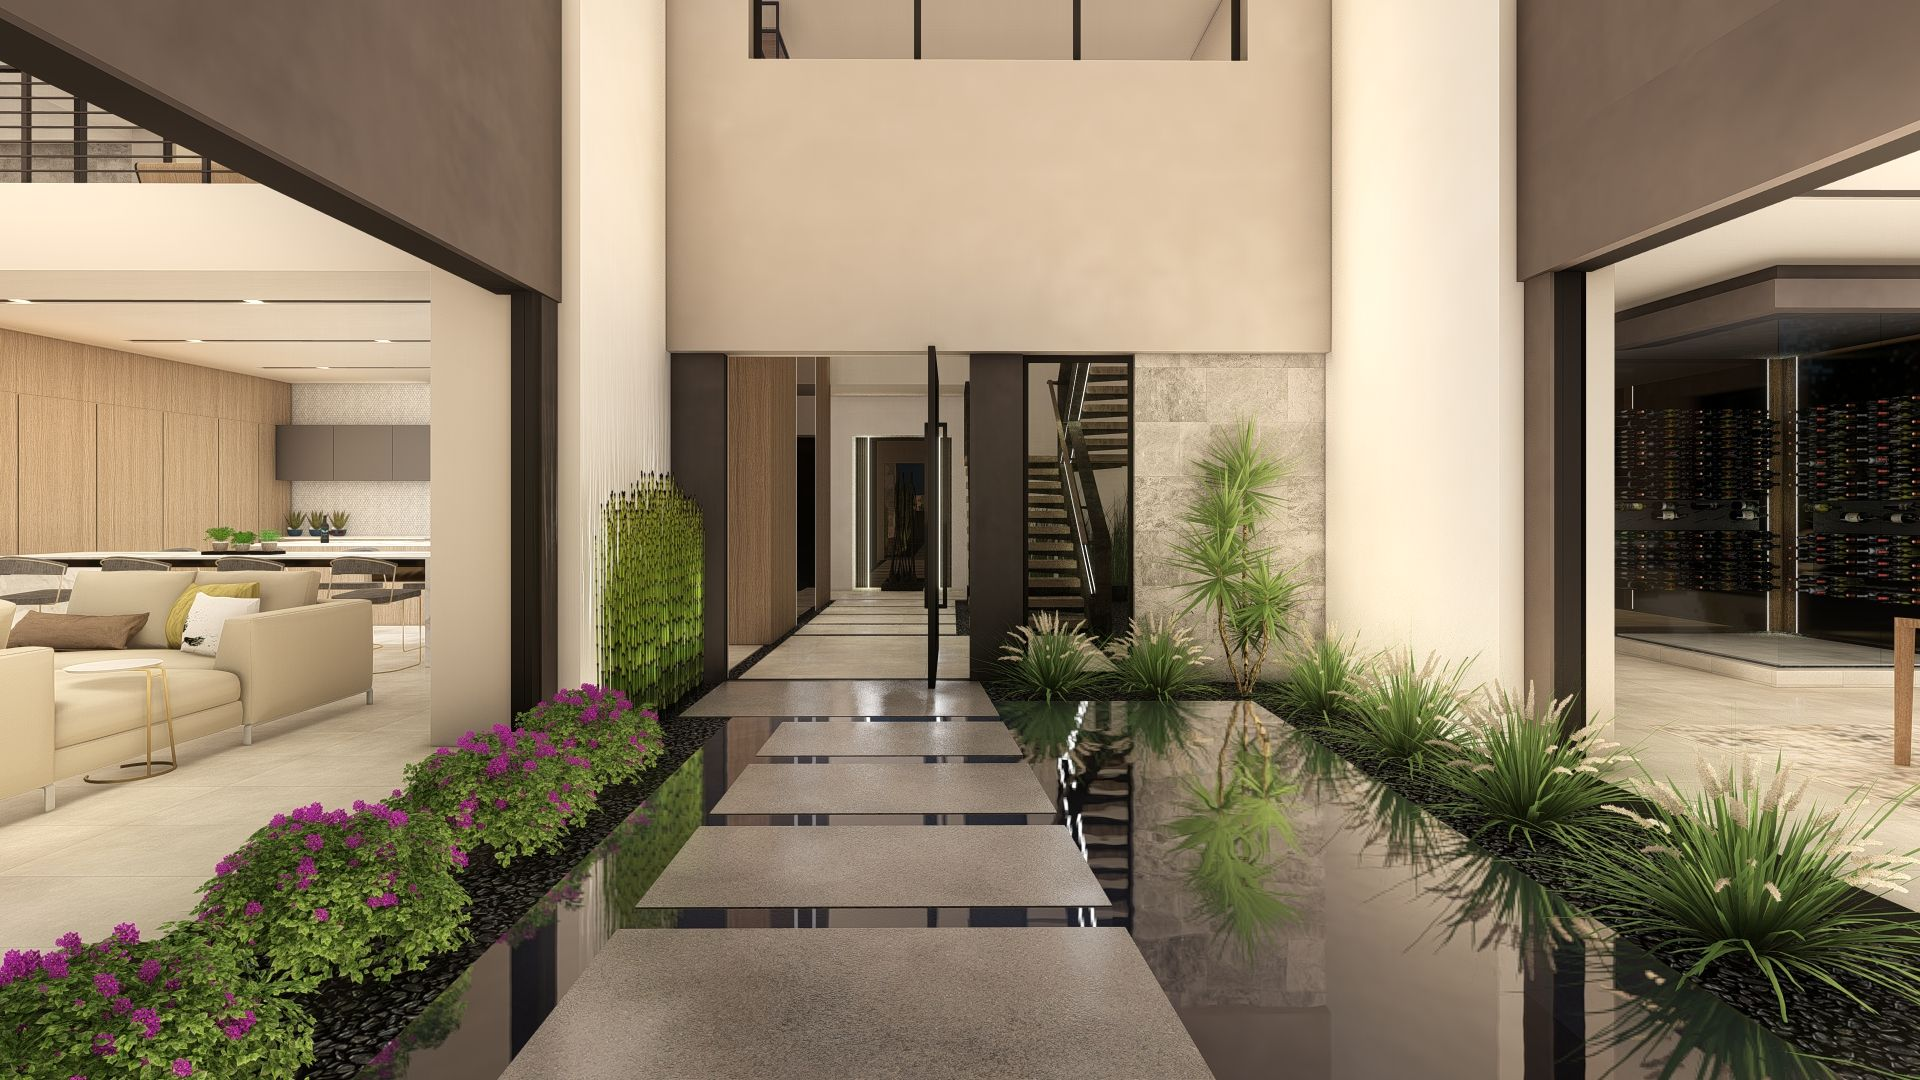 Zenith - Front Entry:Zenith - Front Entry